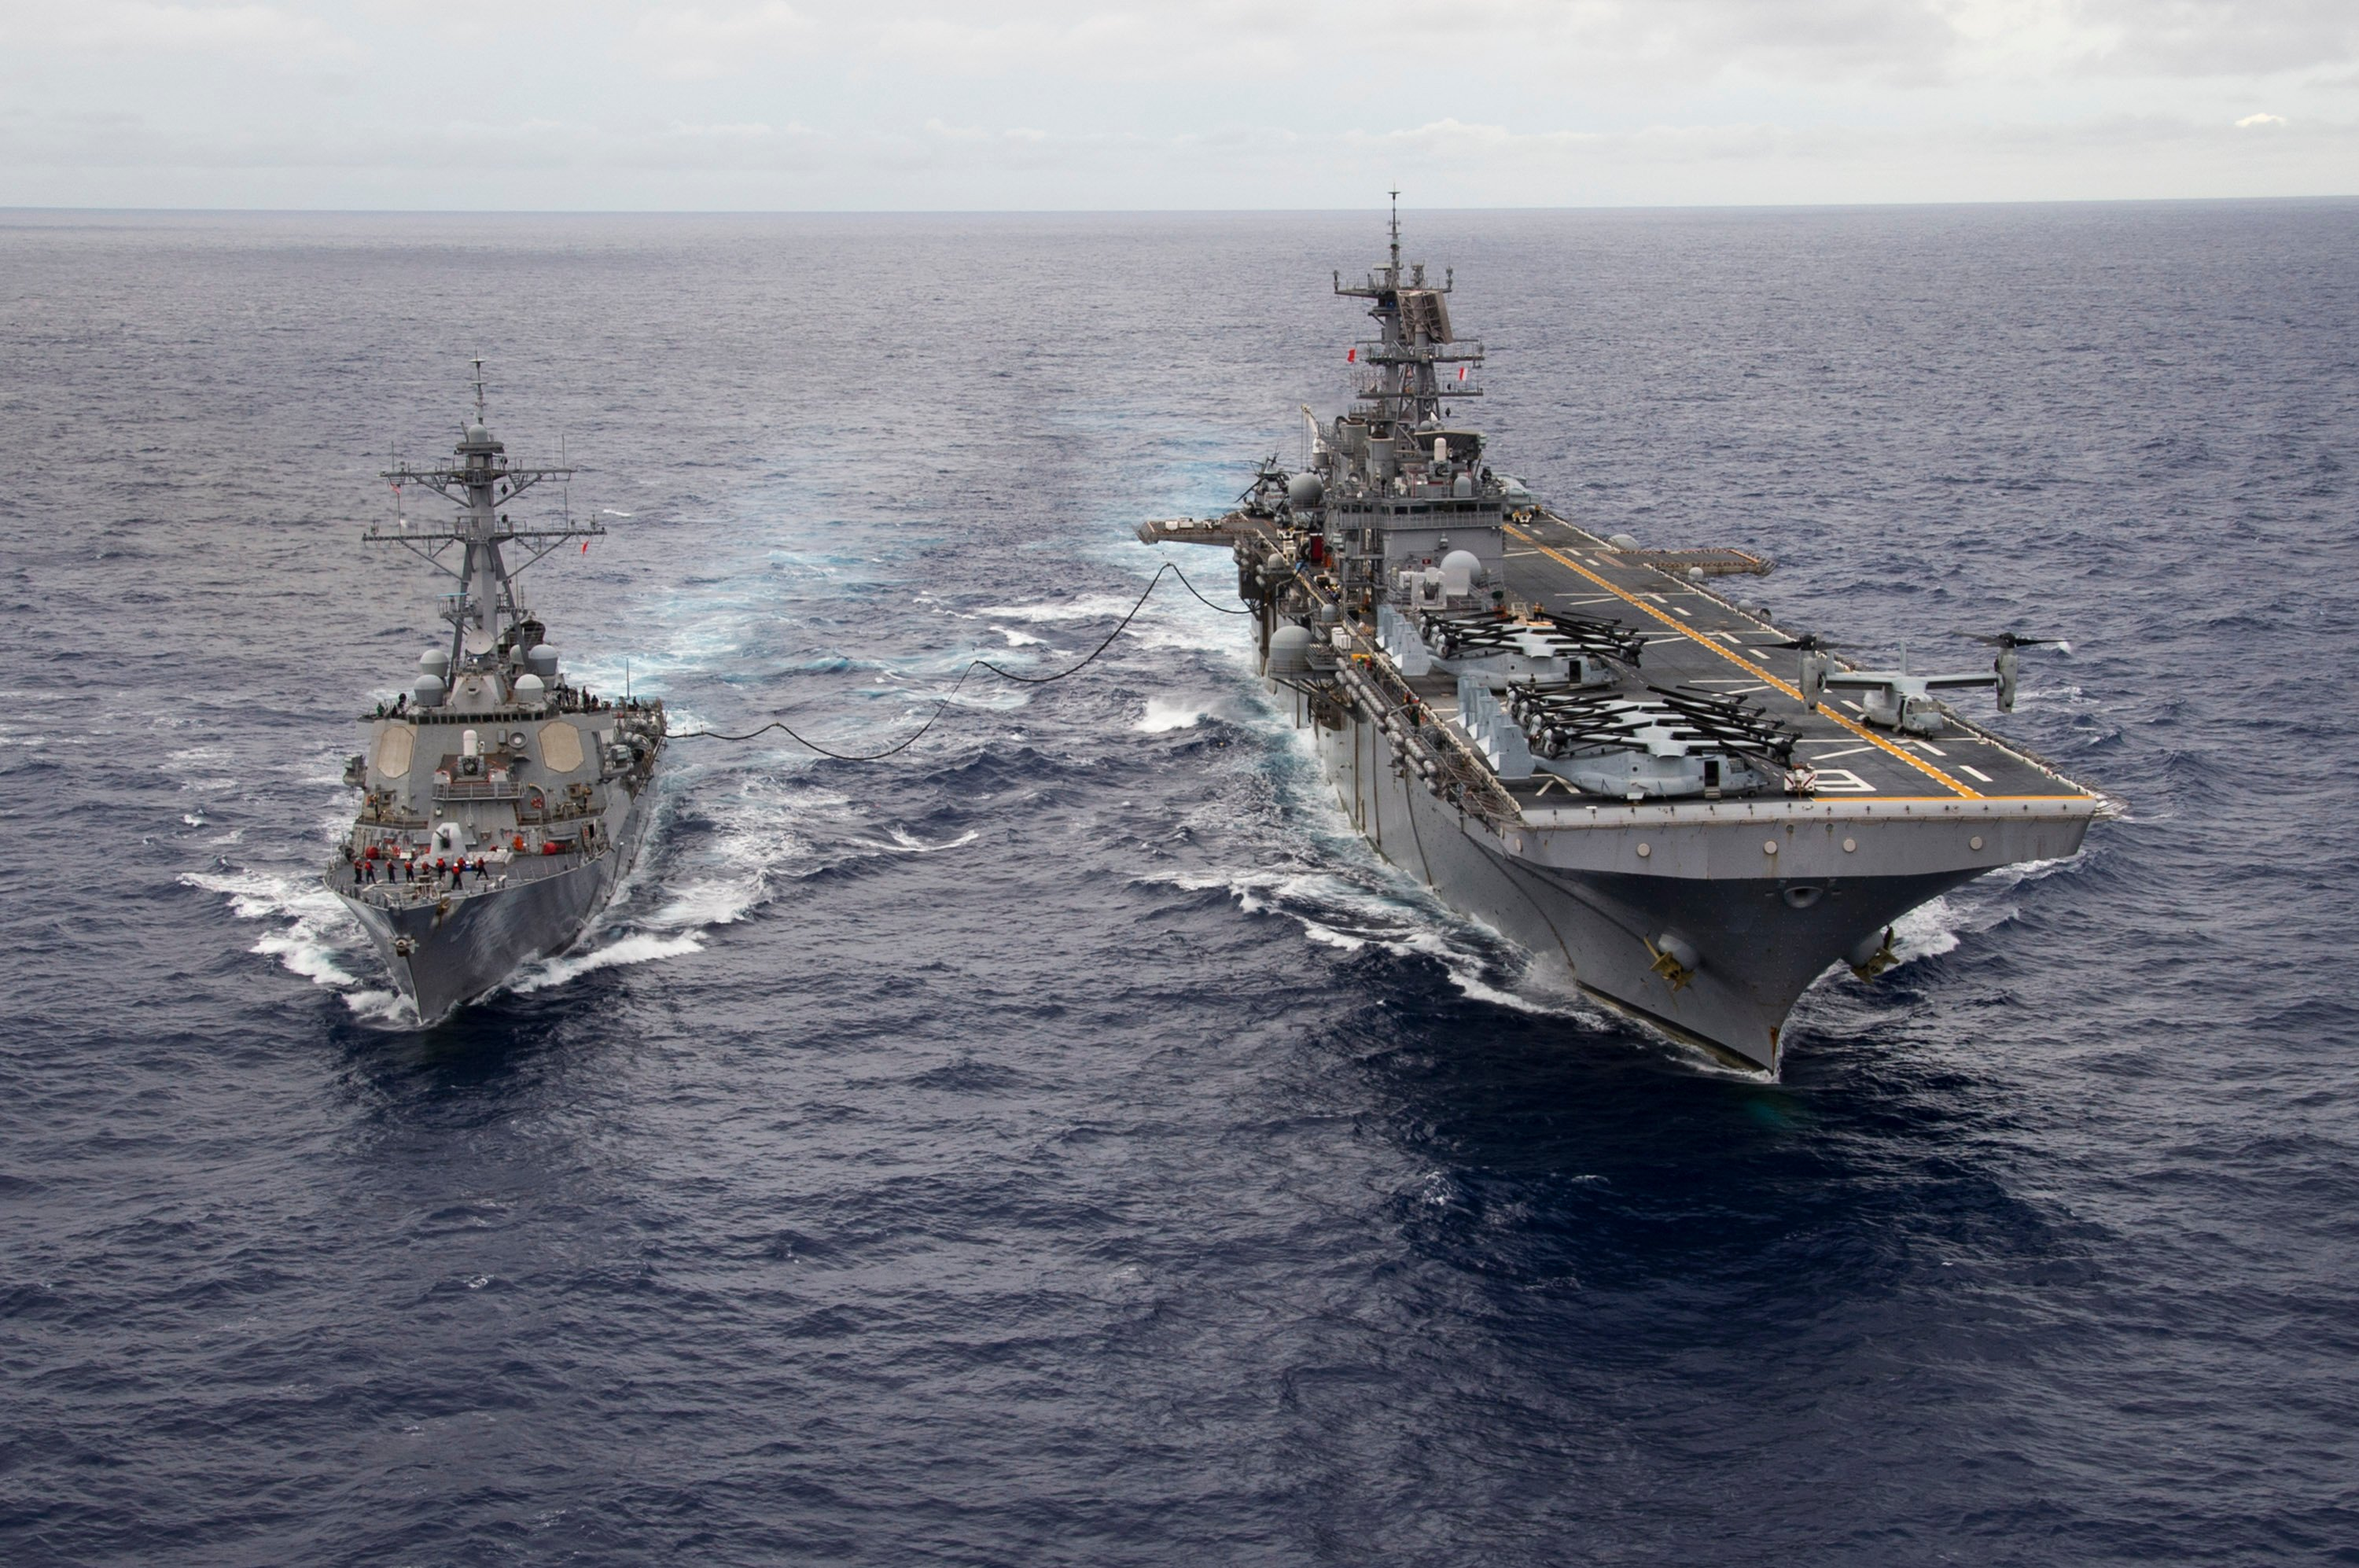 The Arleigh Burke-class guided-missile destroyer USS Curtis Wilber (DDG 54) steams alongside amphibious assault ship USS Bonhomme Richard (LHD 6) in the Philippine Sea Sept. 15 during a fueling at sea (FAS). US Navy photo.